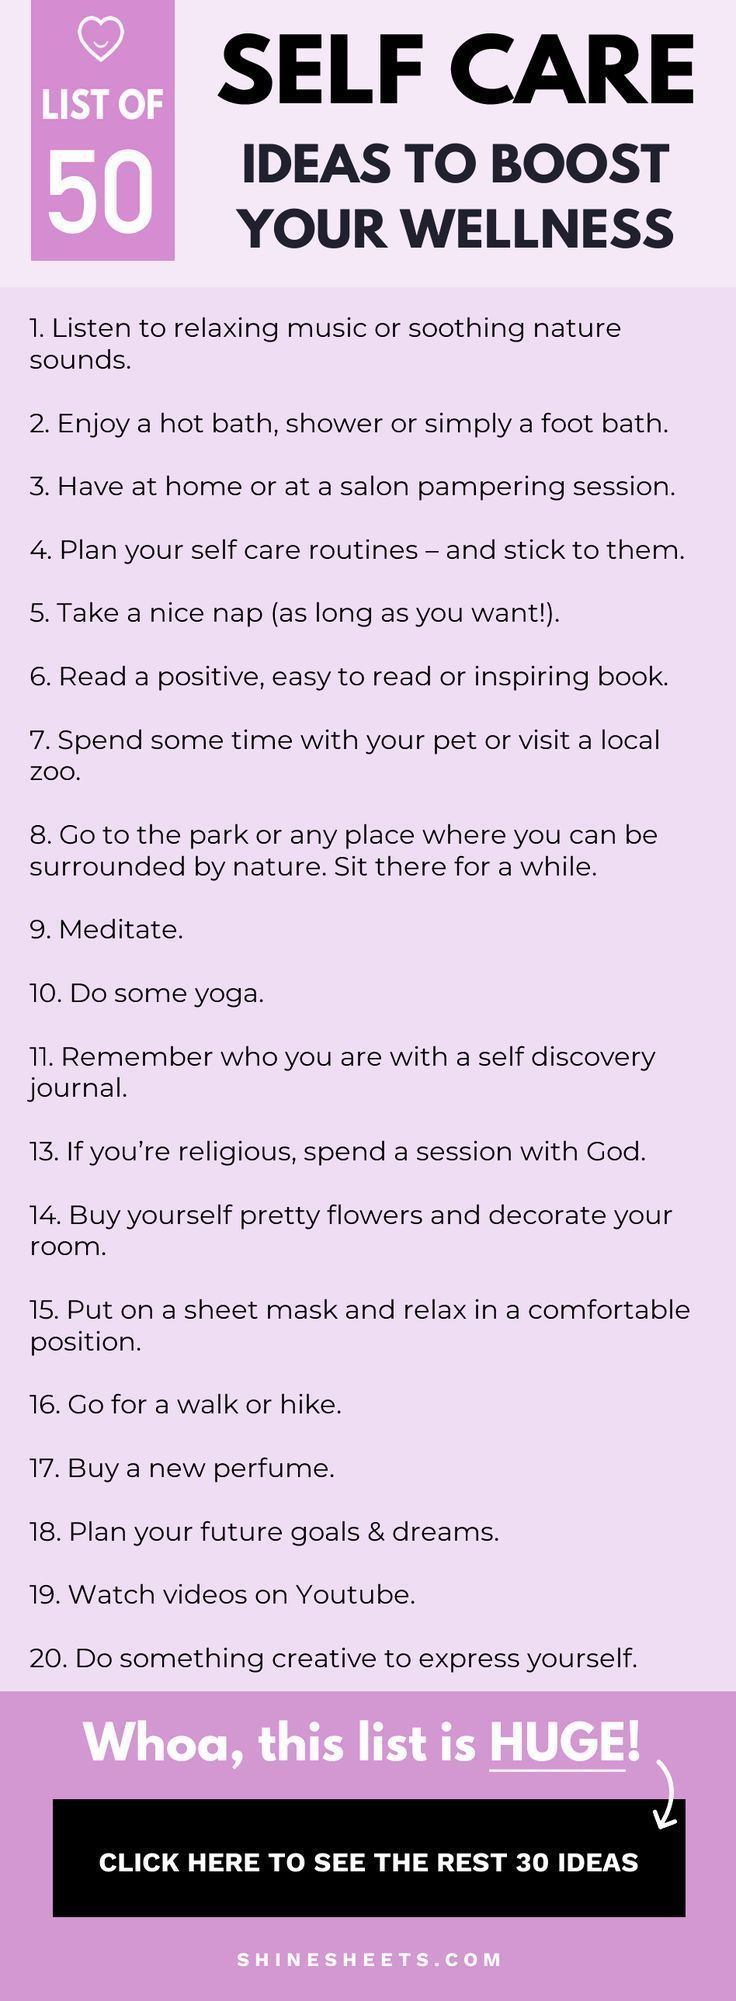 The Ultimate Self Care Ideas List: 50 Ways To Boost Your Wellness